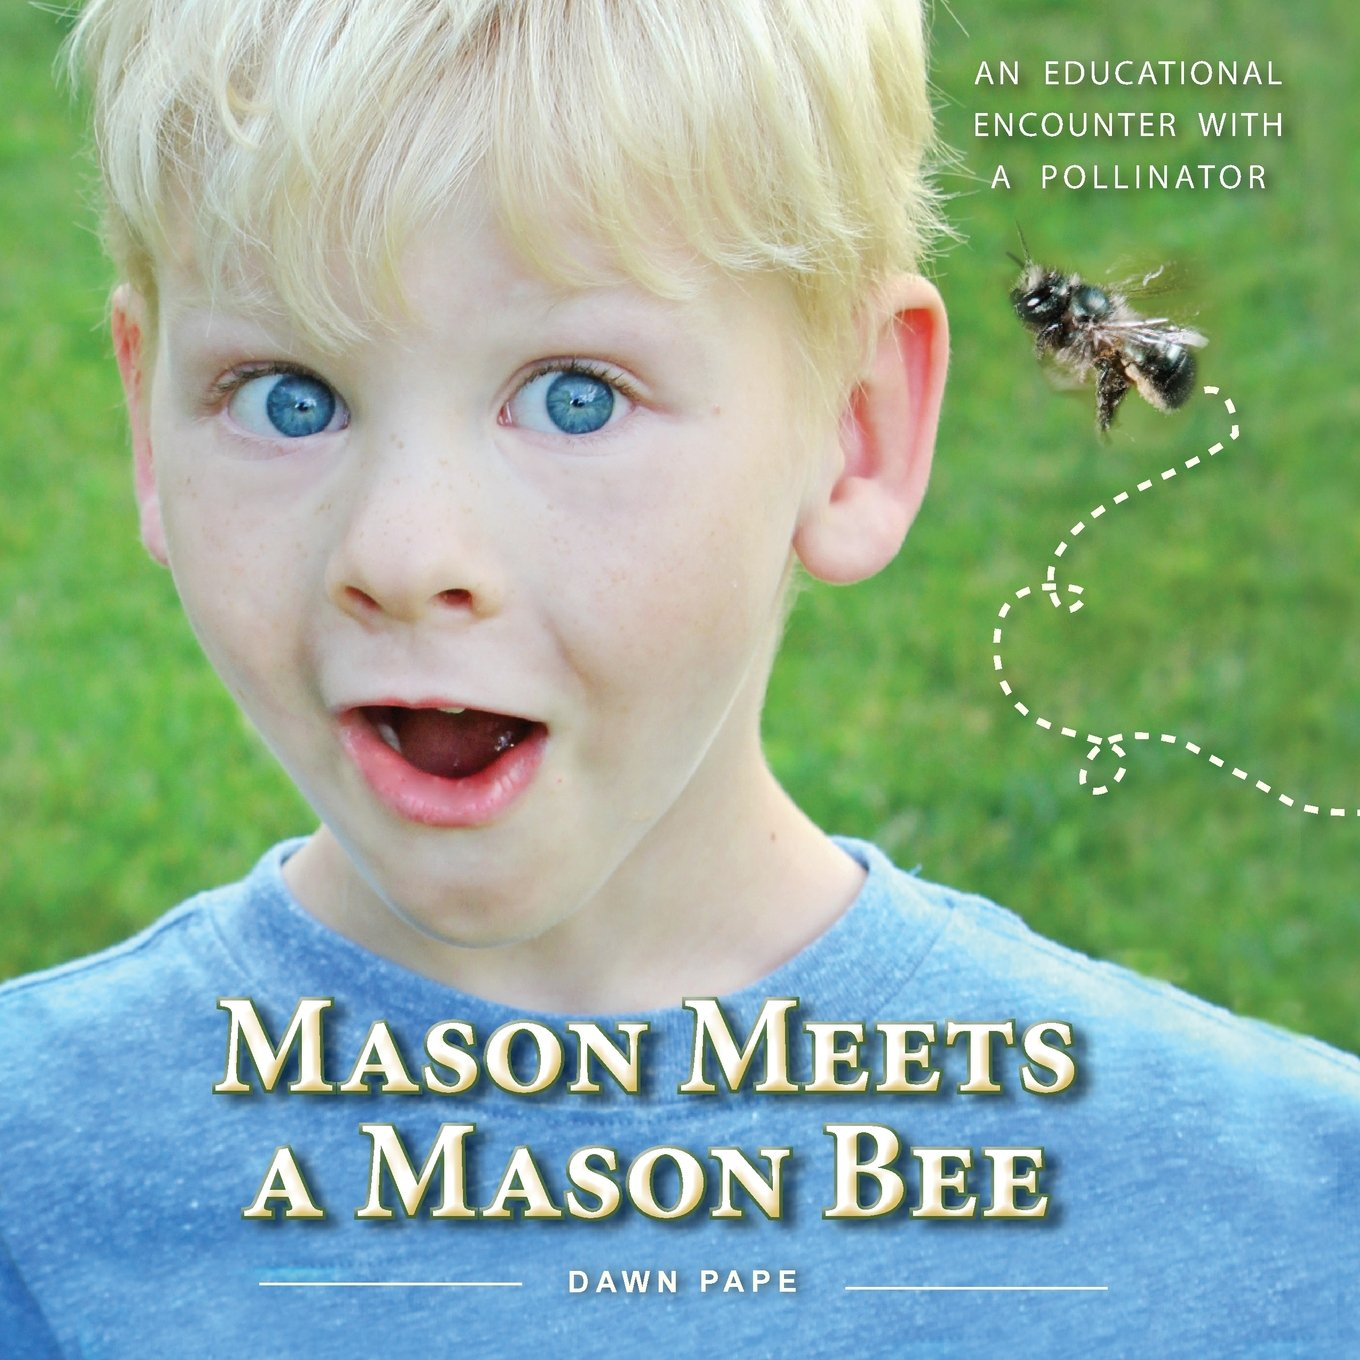 Download Mason Meets a Mason Bee: An Educational Encounter with a Pollinator pdf